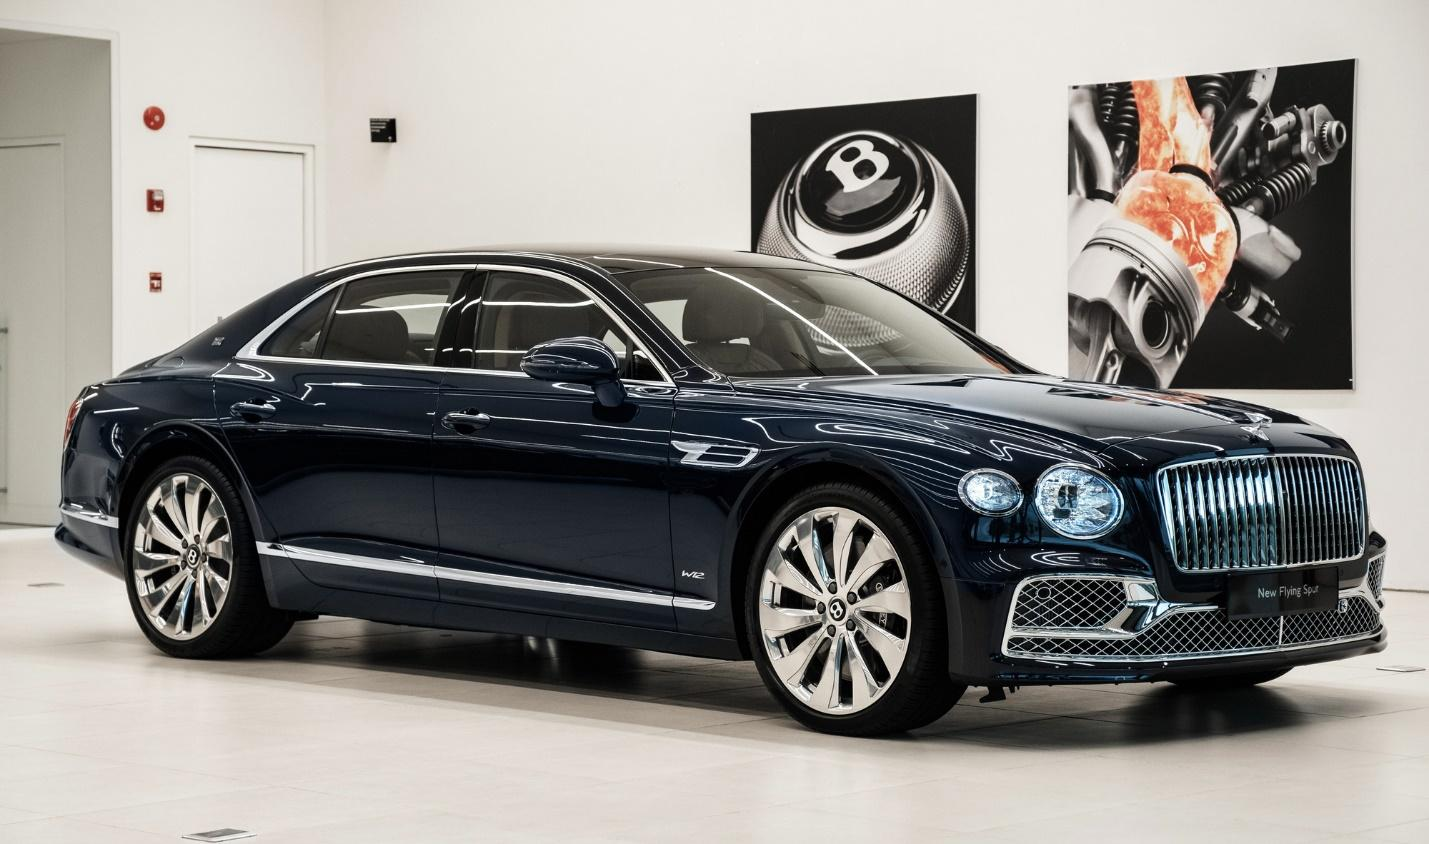 chi-tiet-xe-bentley-flying-spur-first-edition-2021-danhgiaxehoi-vn-13